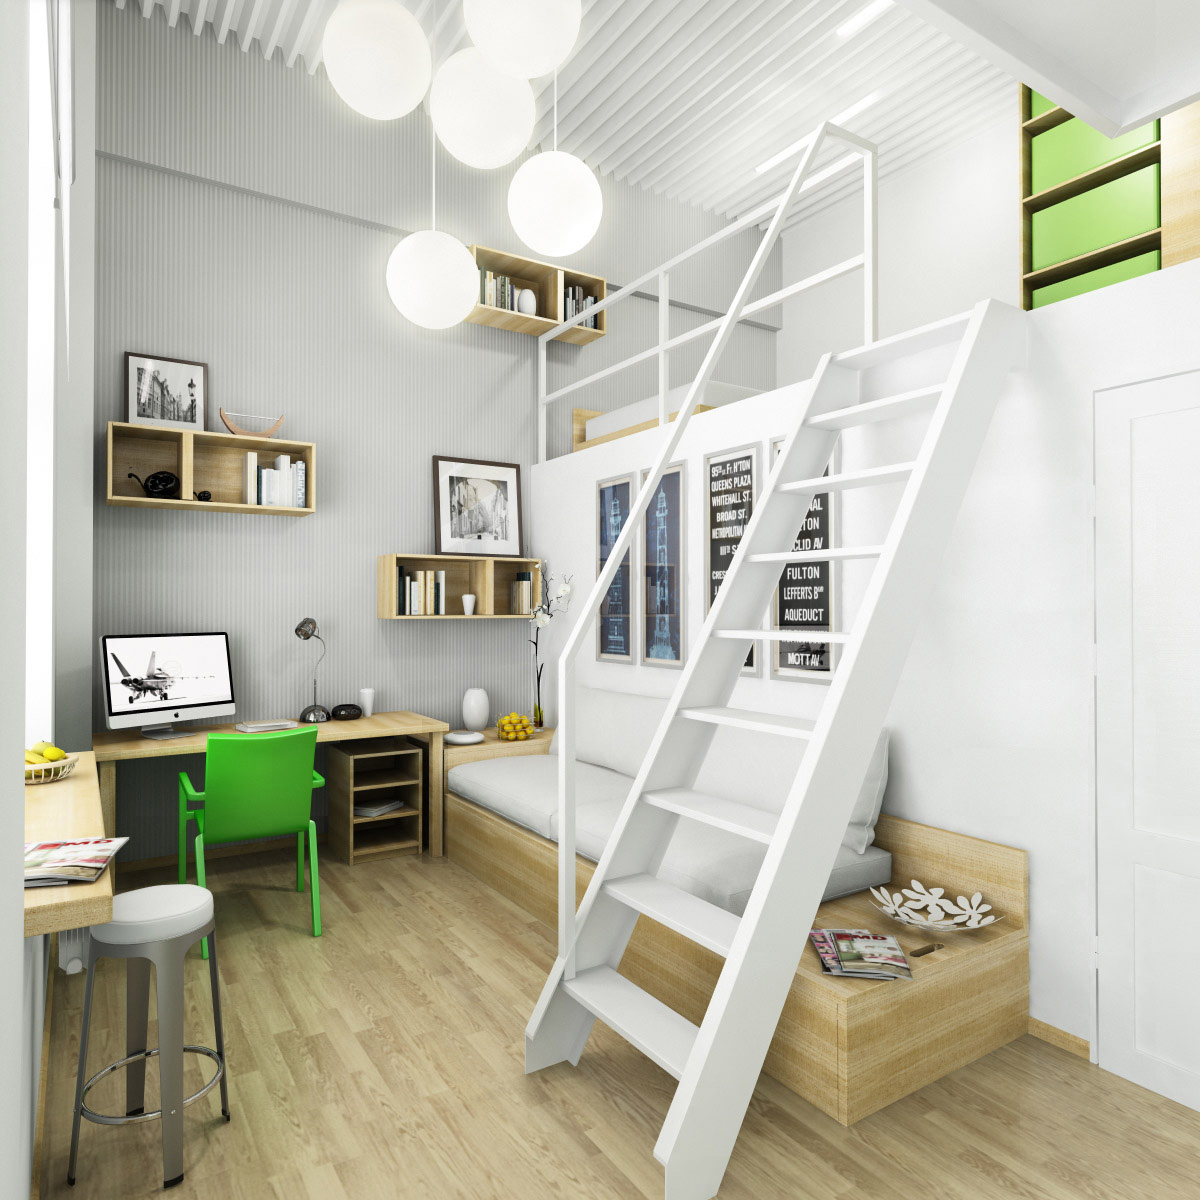 Teen workspaces - Learn interior design at home virtually ...